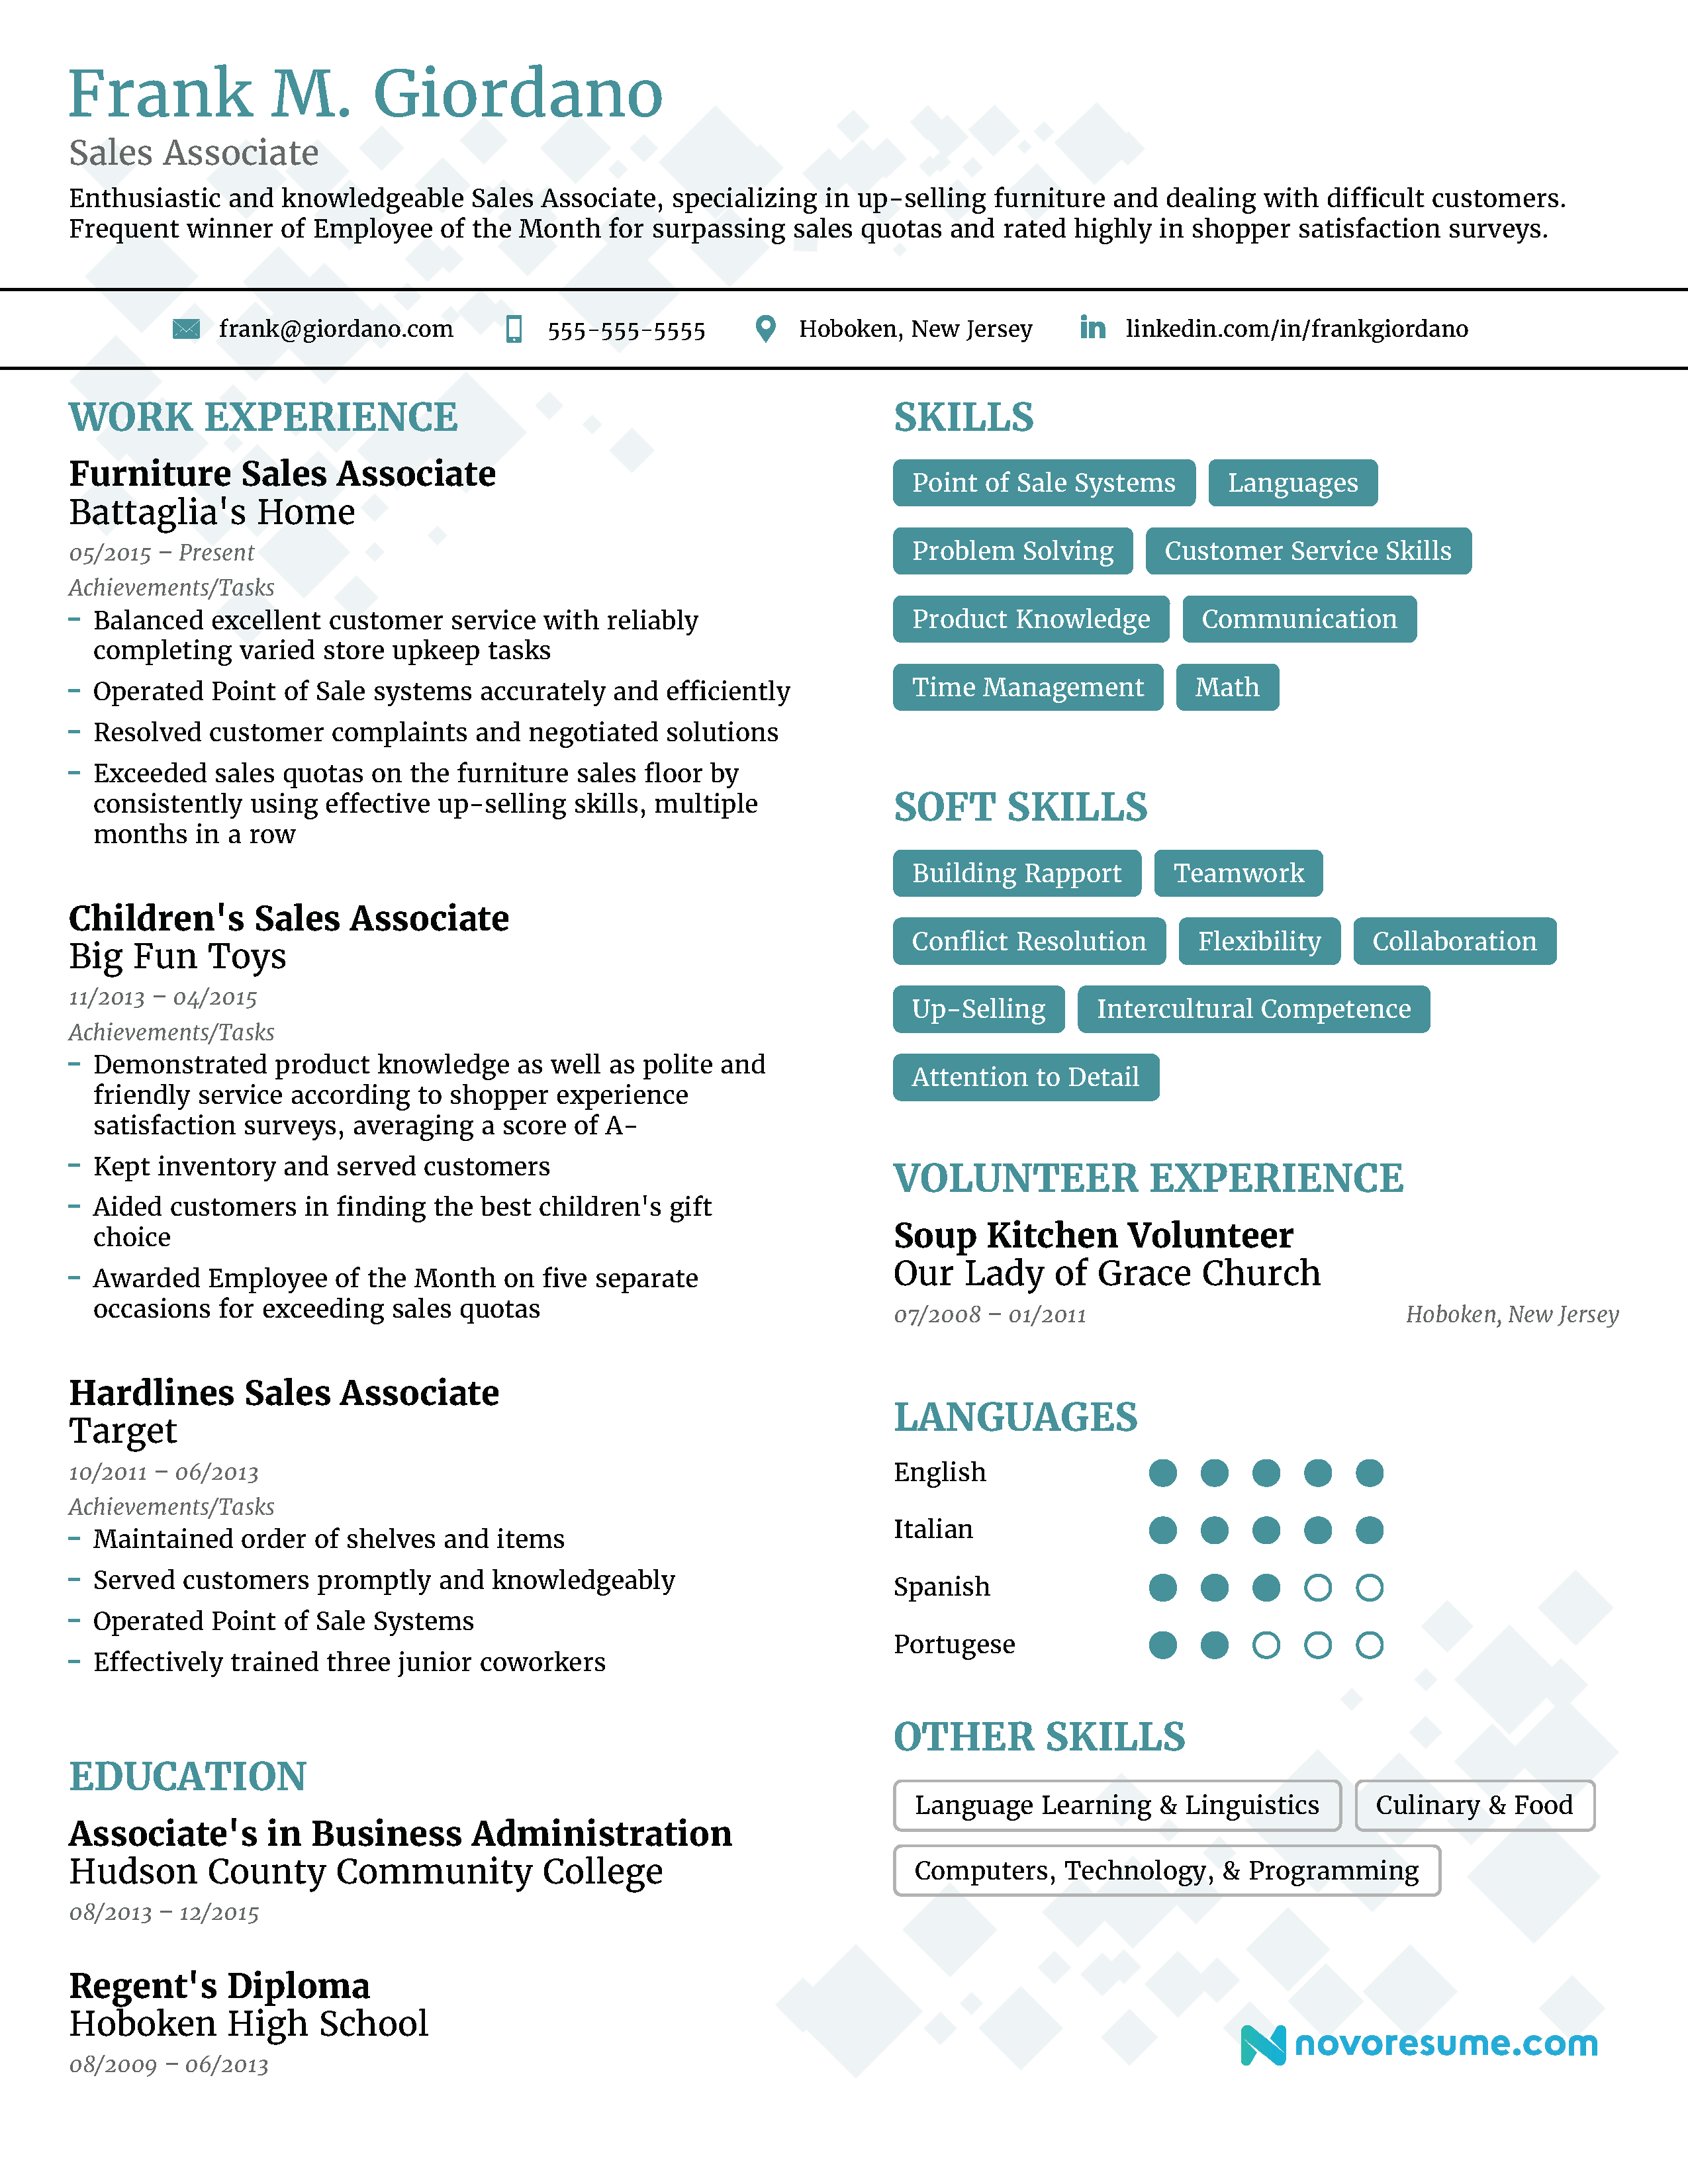 sales associate resume 2018 example full guide